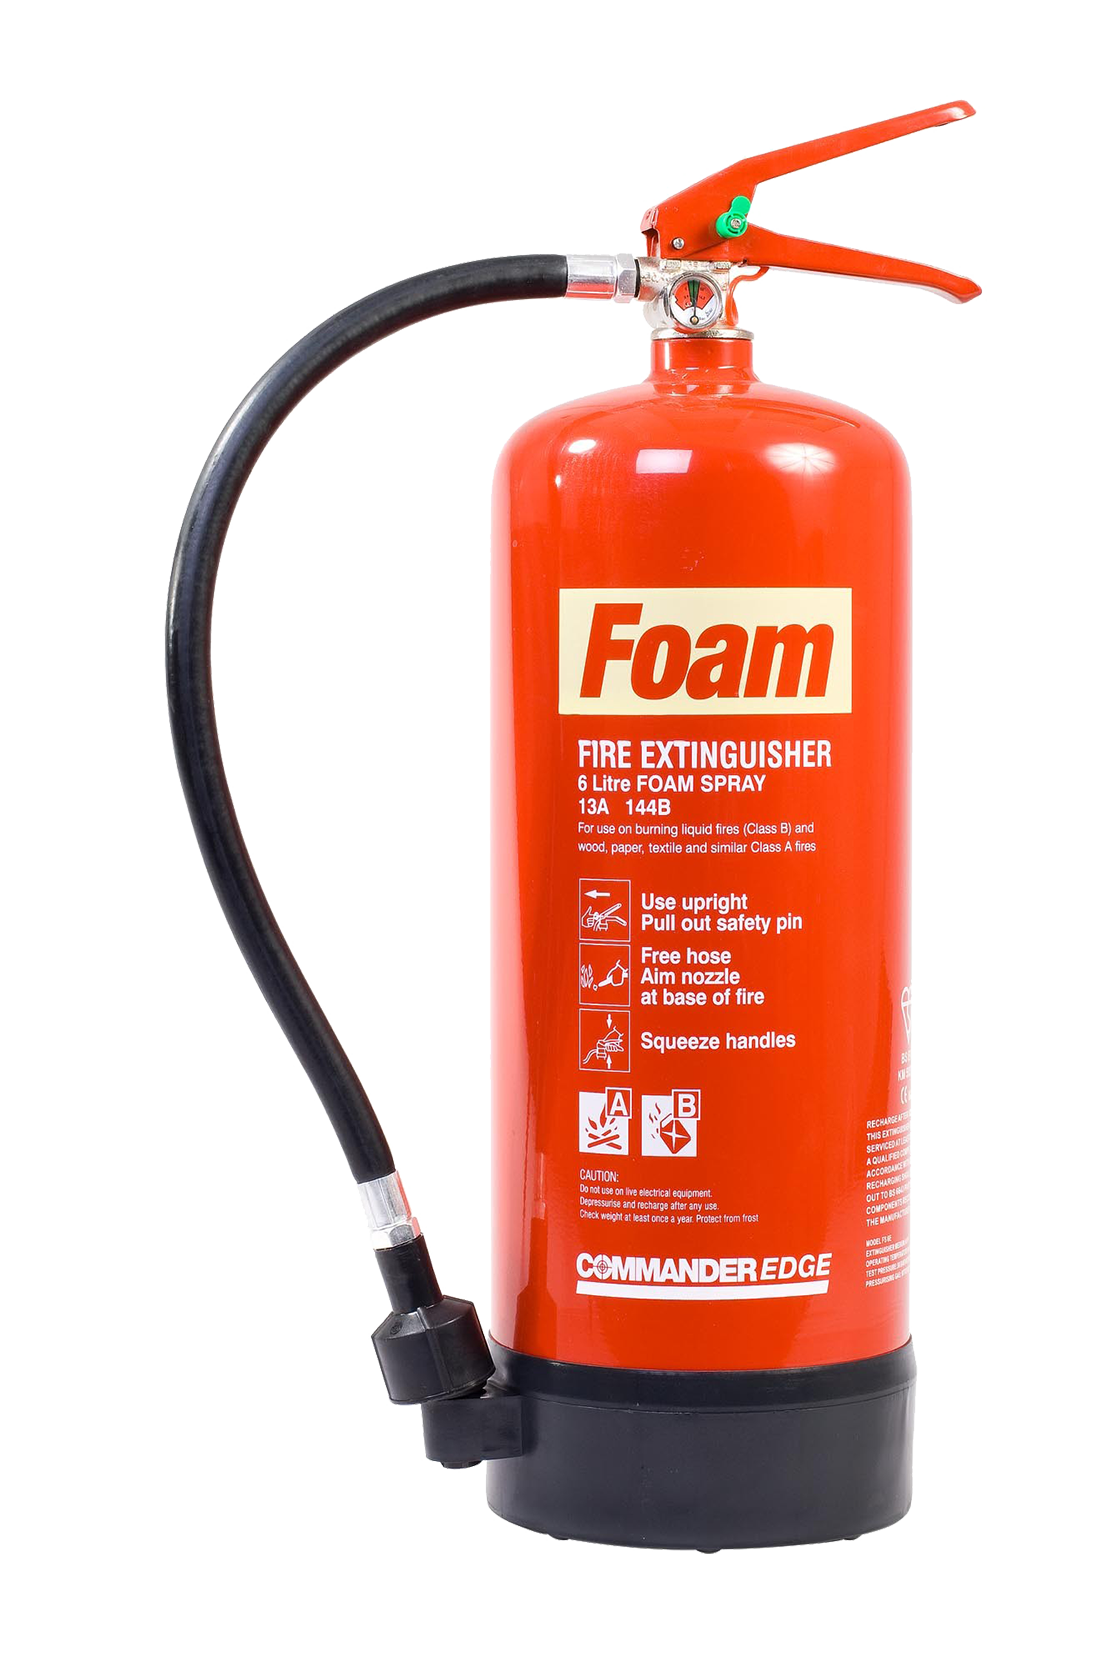 Extinguisher Png Image Extinguisher Foam Fire Extinguisher Fire Protection